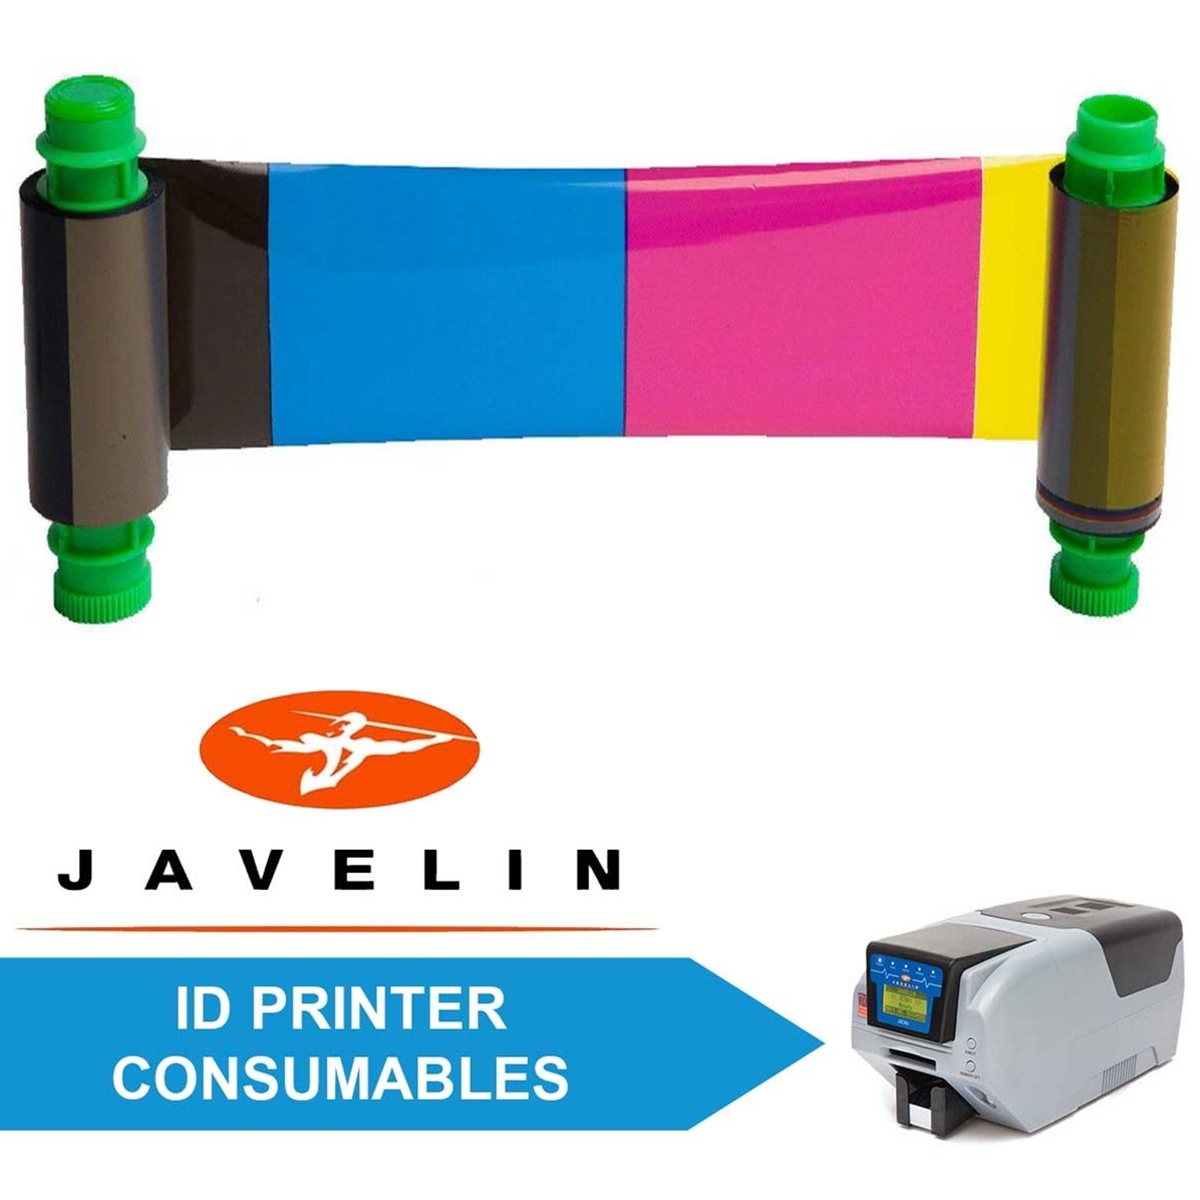 Consumables for Javelin J230i ID Printers